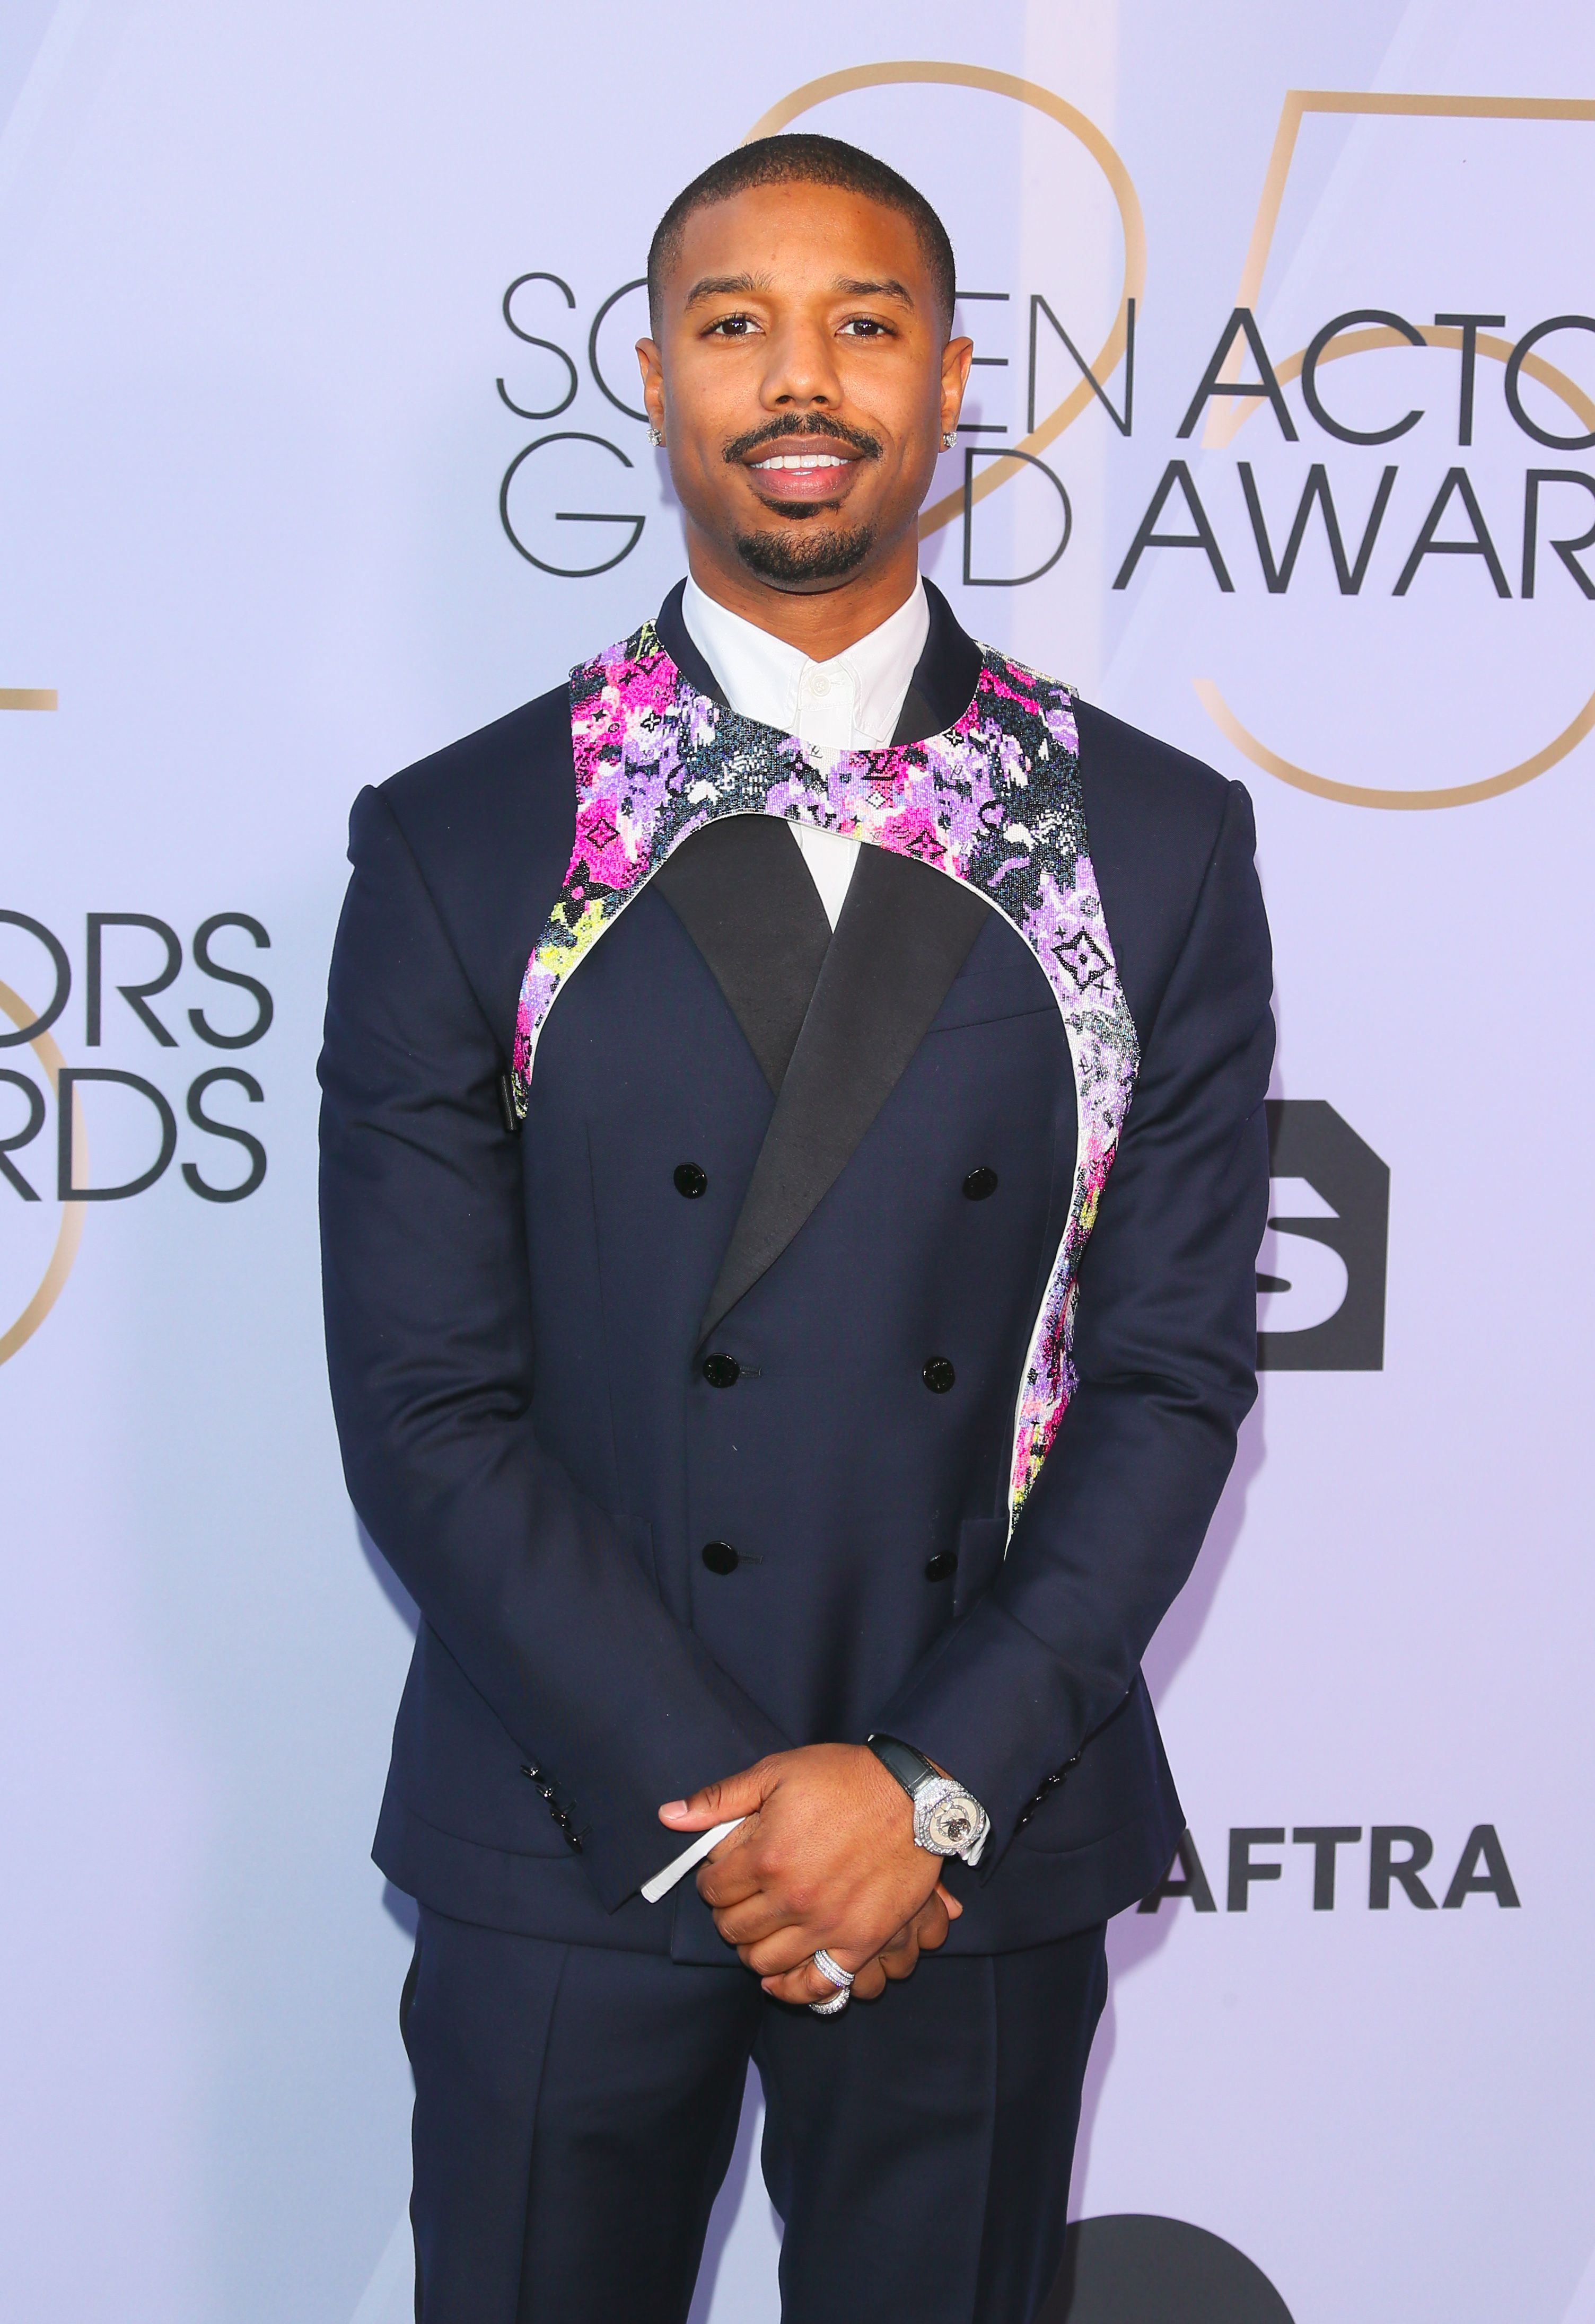 23df9474a28 Why Are Celebrities Like Michael B. Jordan Wearing Harnesses on the Red  Carpet?